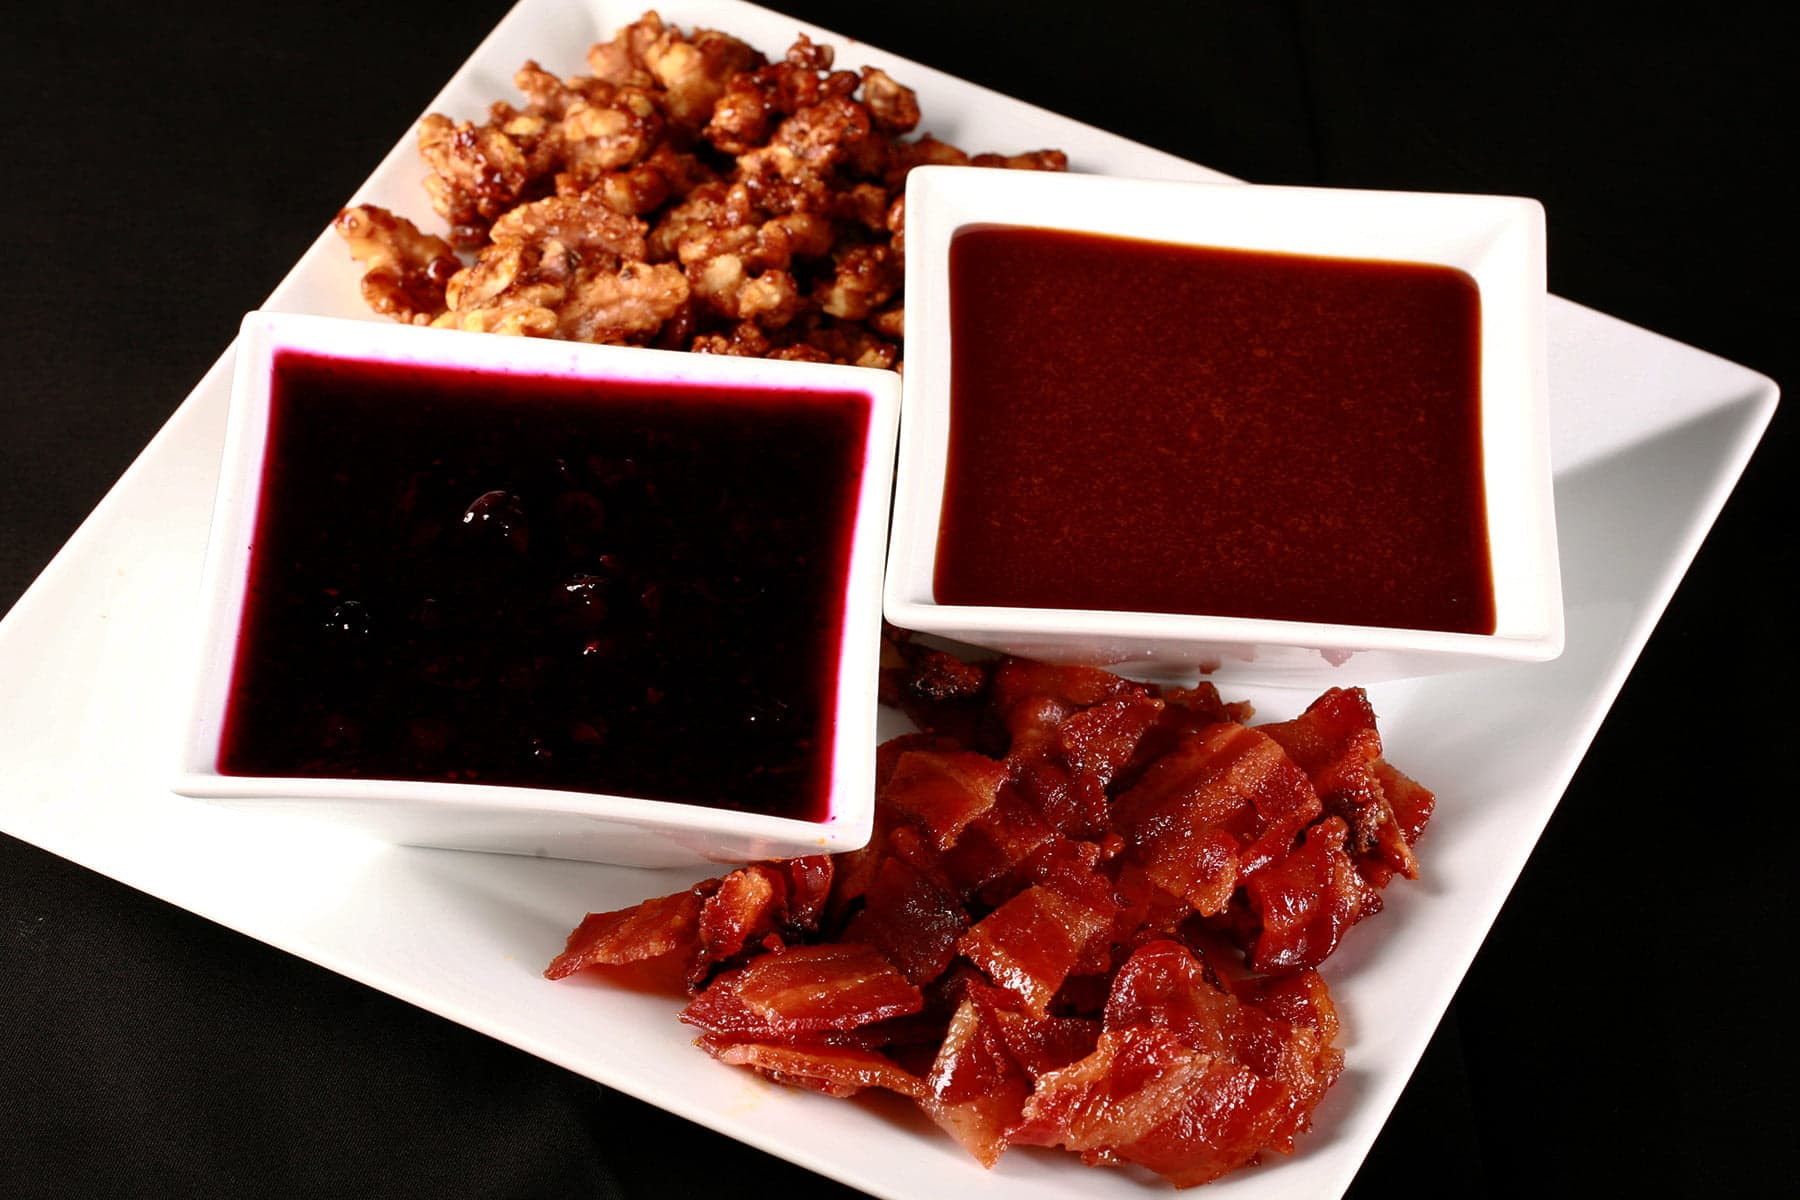 A large square white plate with ice cream toppings arranged on it.  Two square bowls hold sauces - blueberry and salted caramel - while candied bacon is in one corner, and candied nuts are piled in another corner.